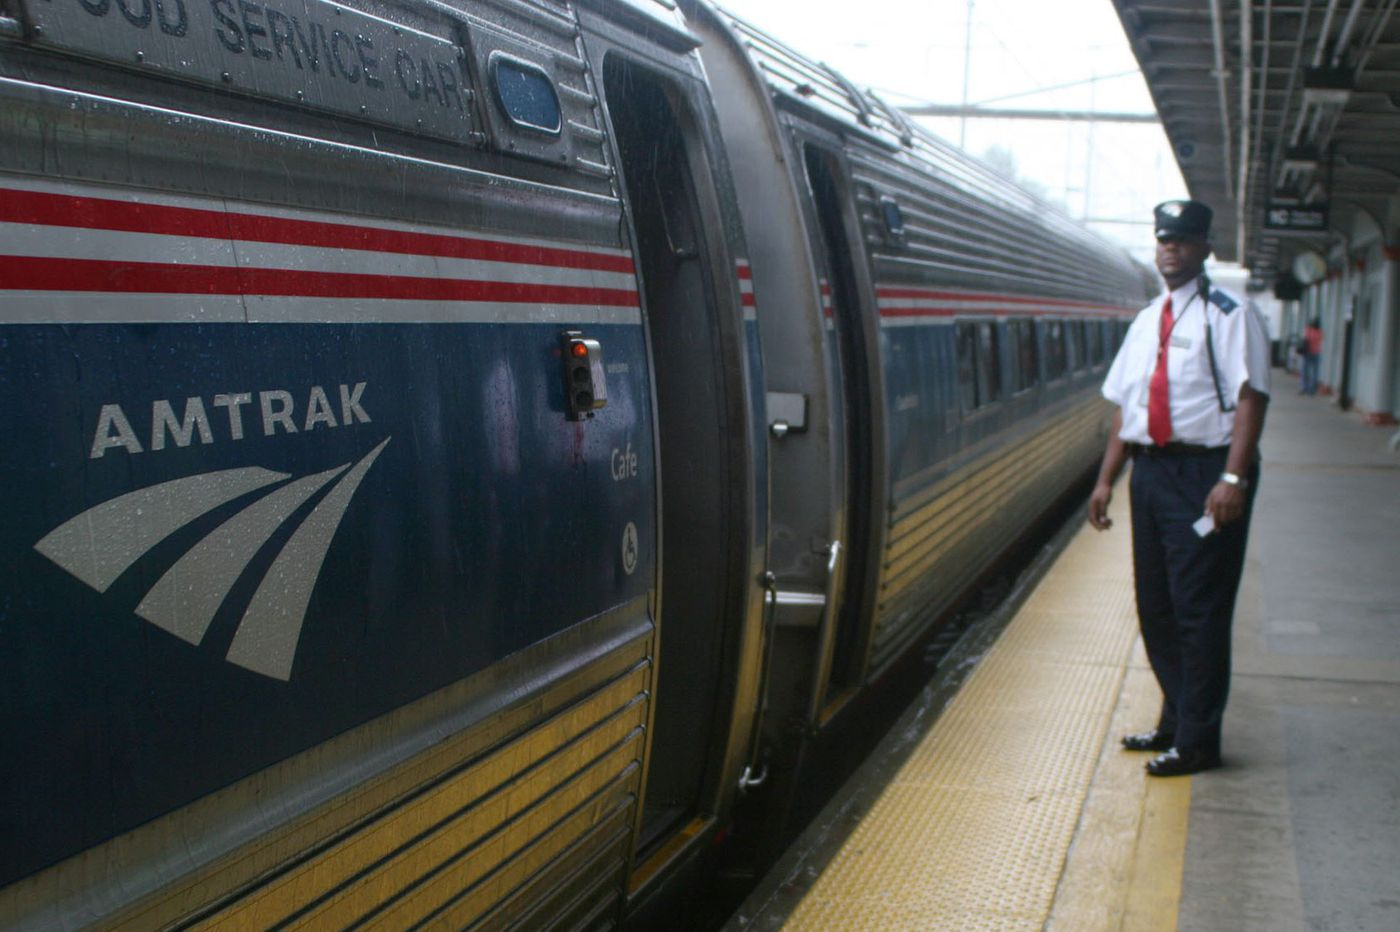 Reflections from the Quiet Car: No noise is good noise | Opinion